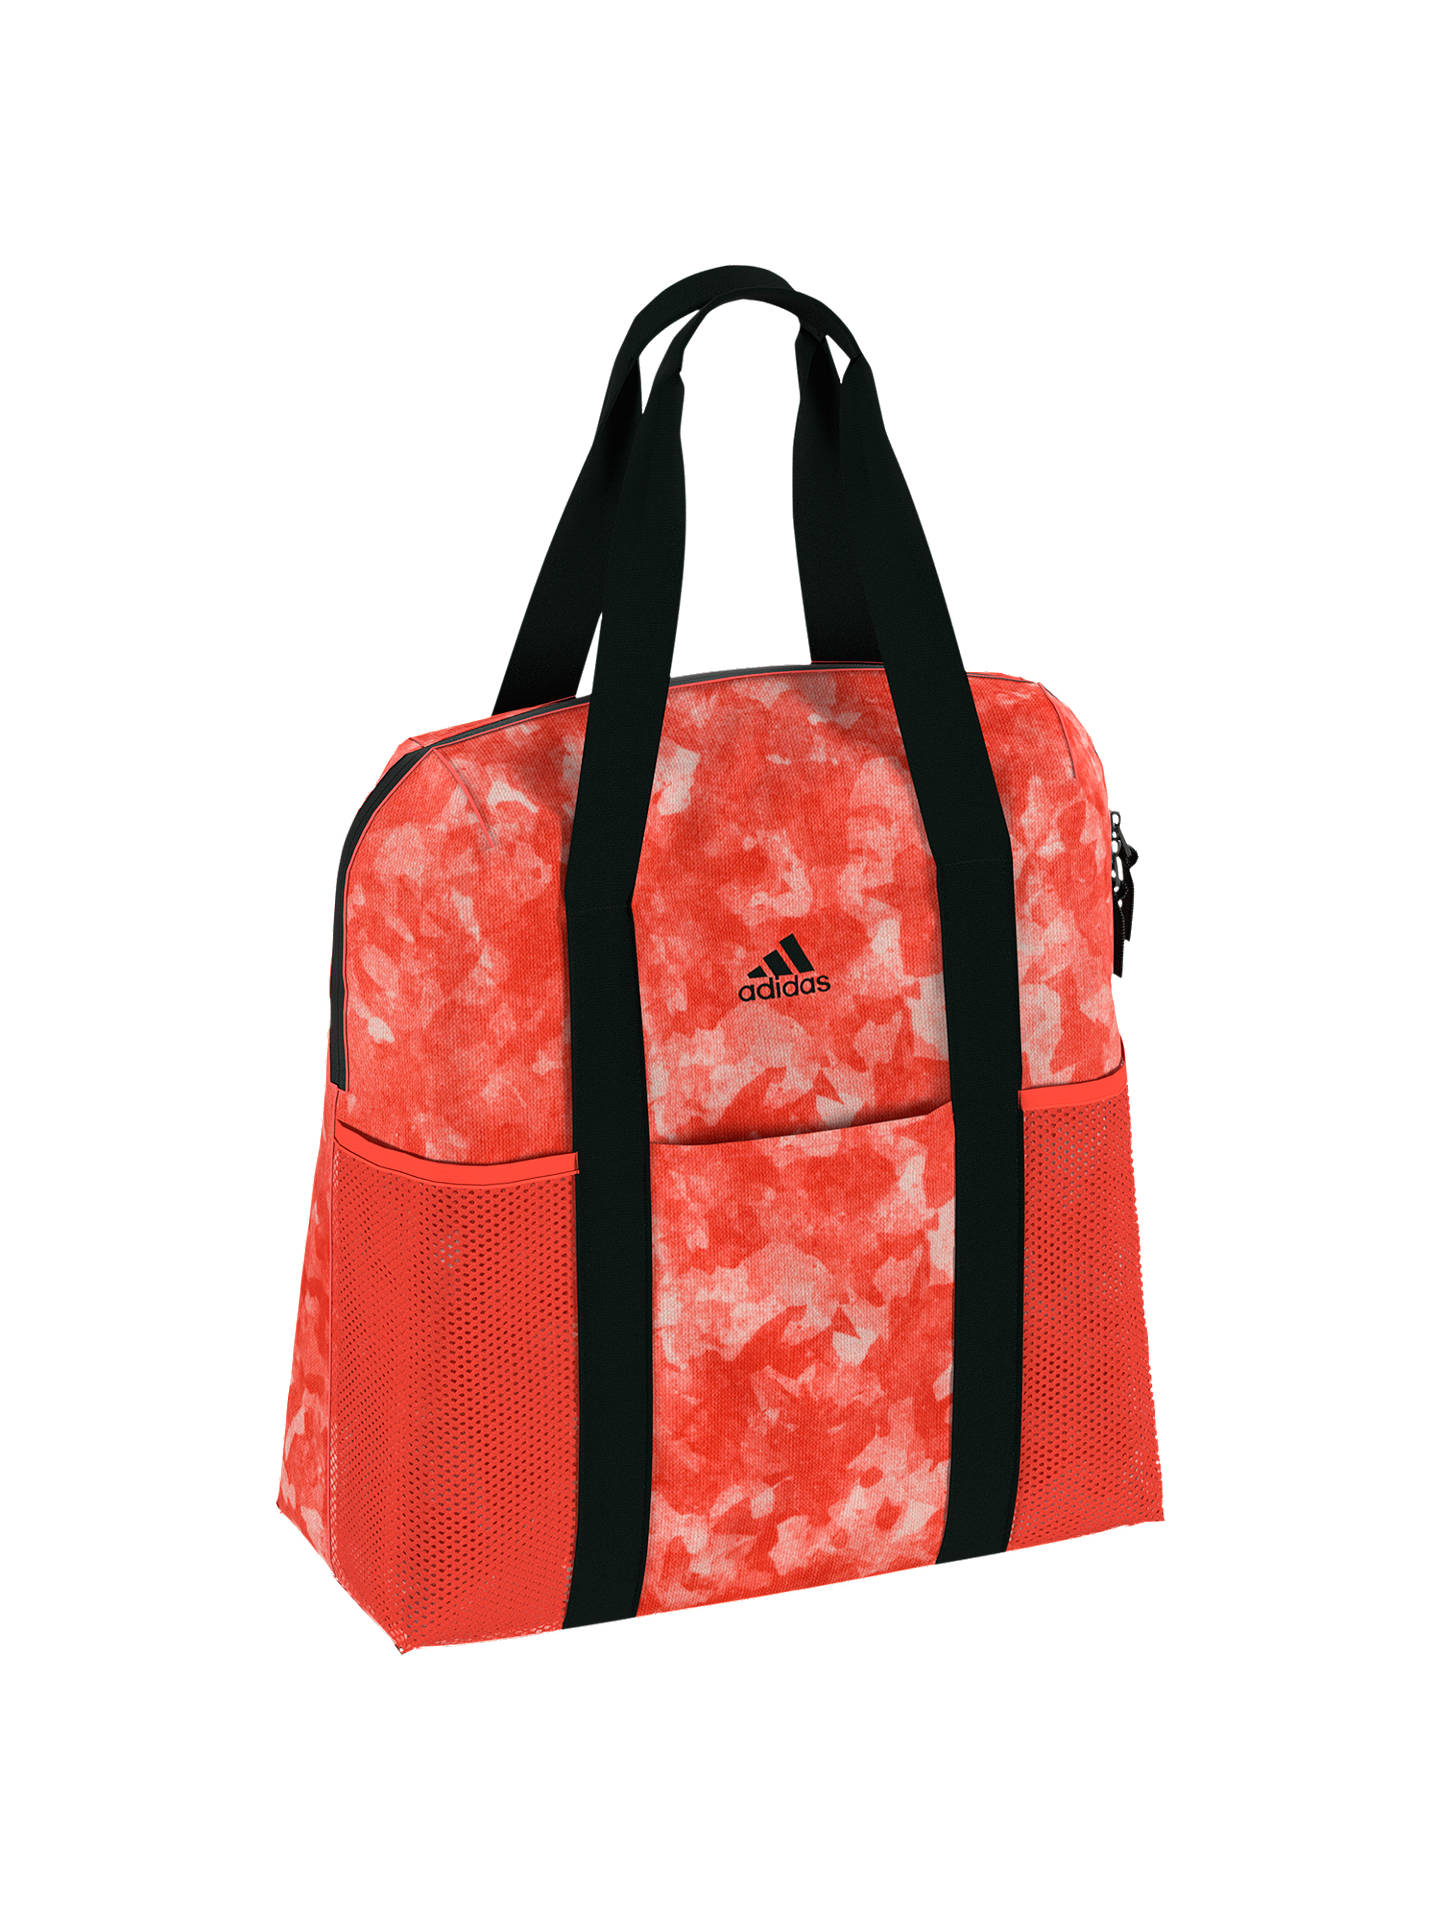 f711a8fa4f2 Buy adidas Training Tote Bag, Scarlet Online at johnlewis.com ...